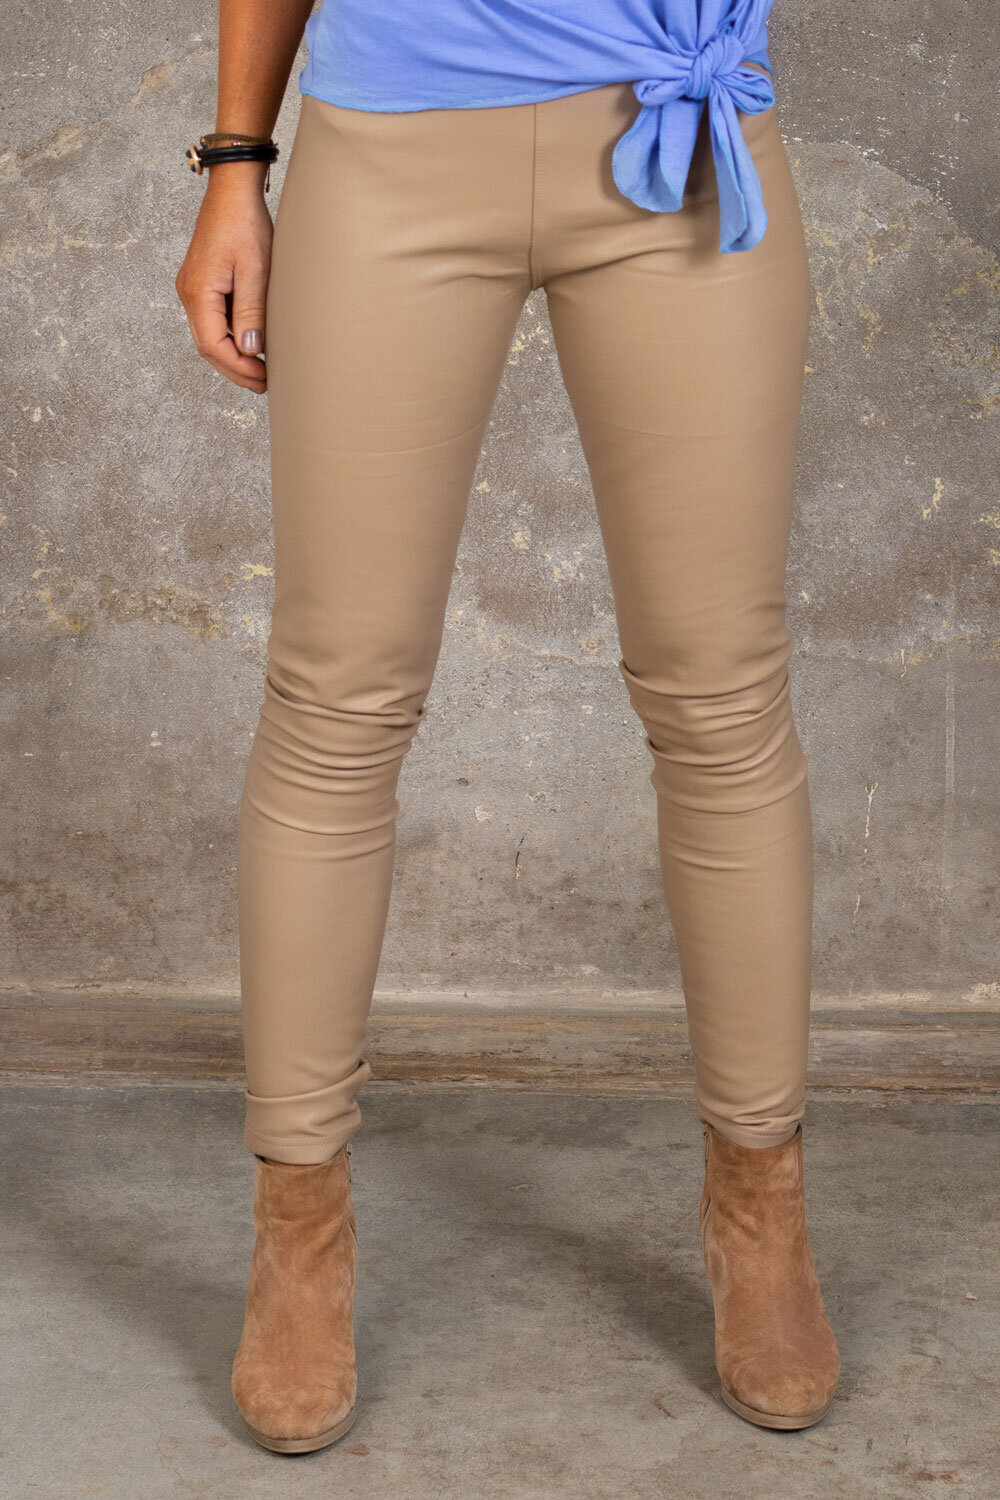 Leggings i imitert skinn - VS18013-1-10 - Beige